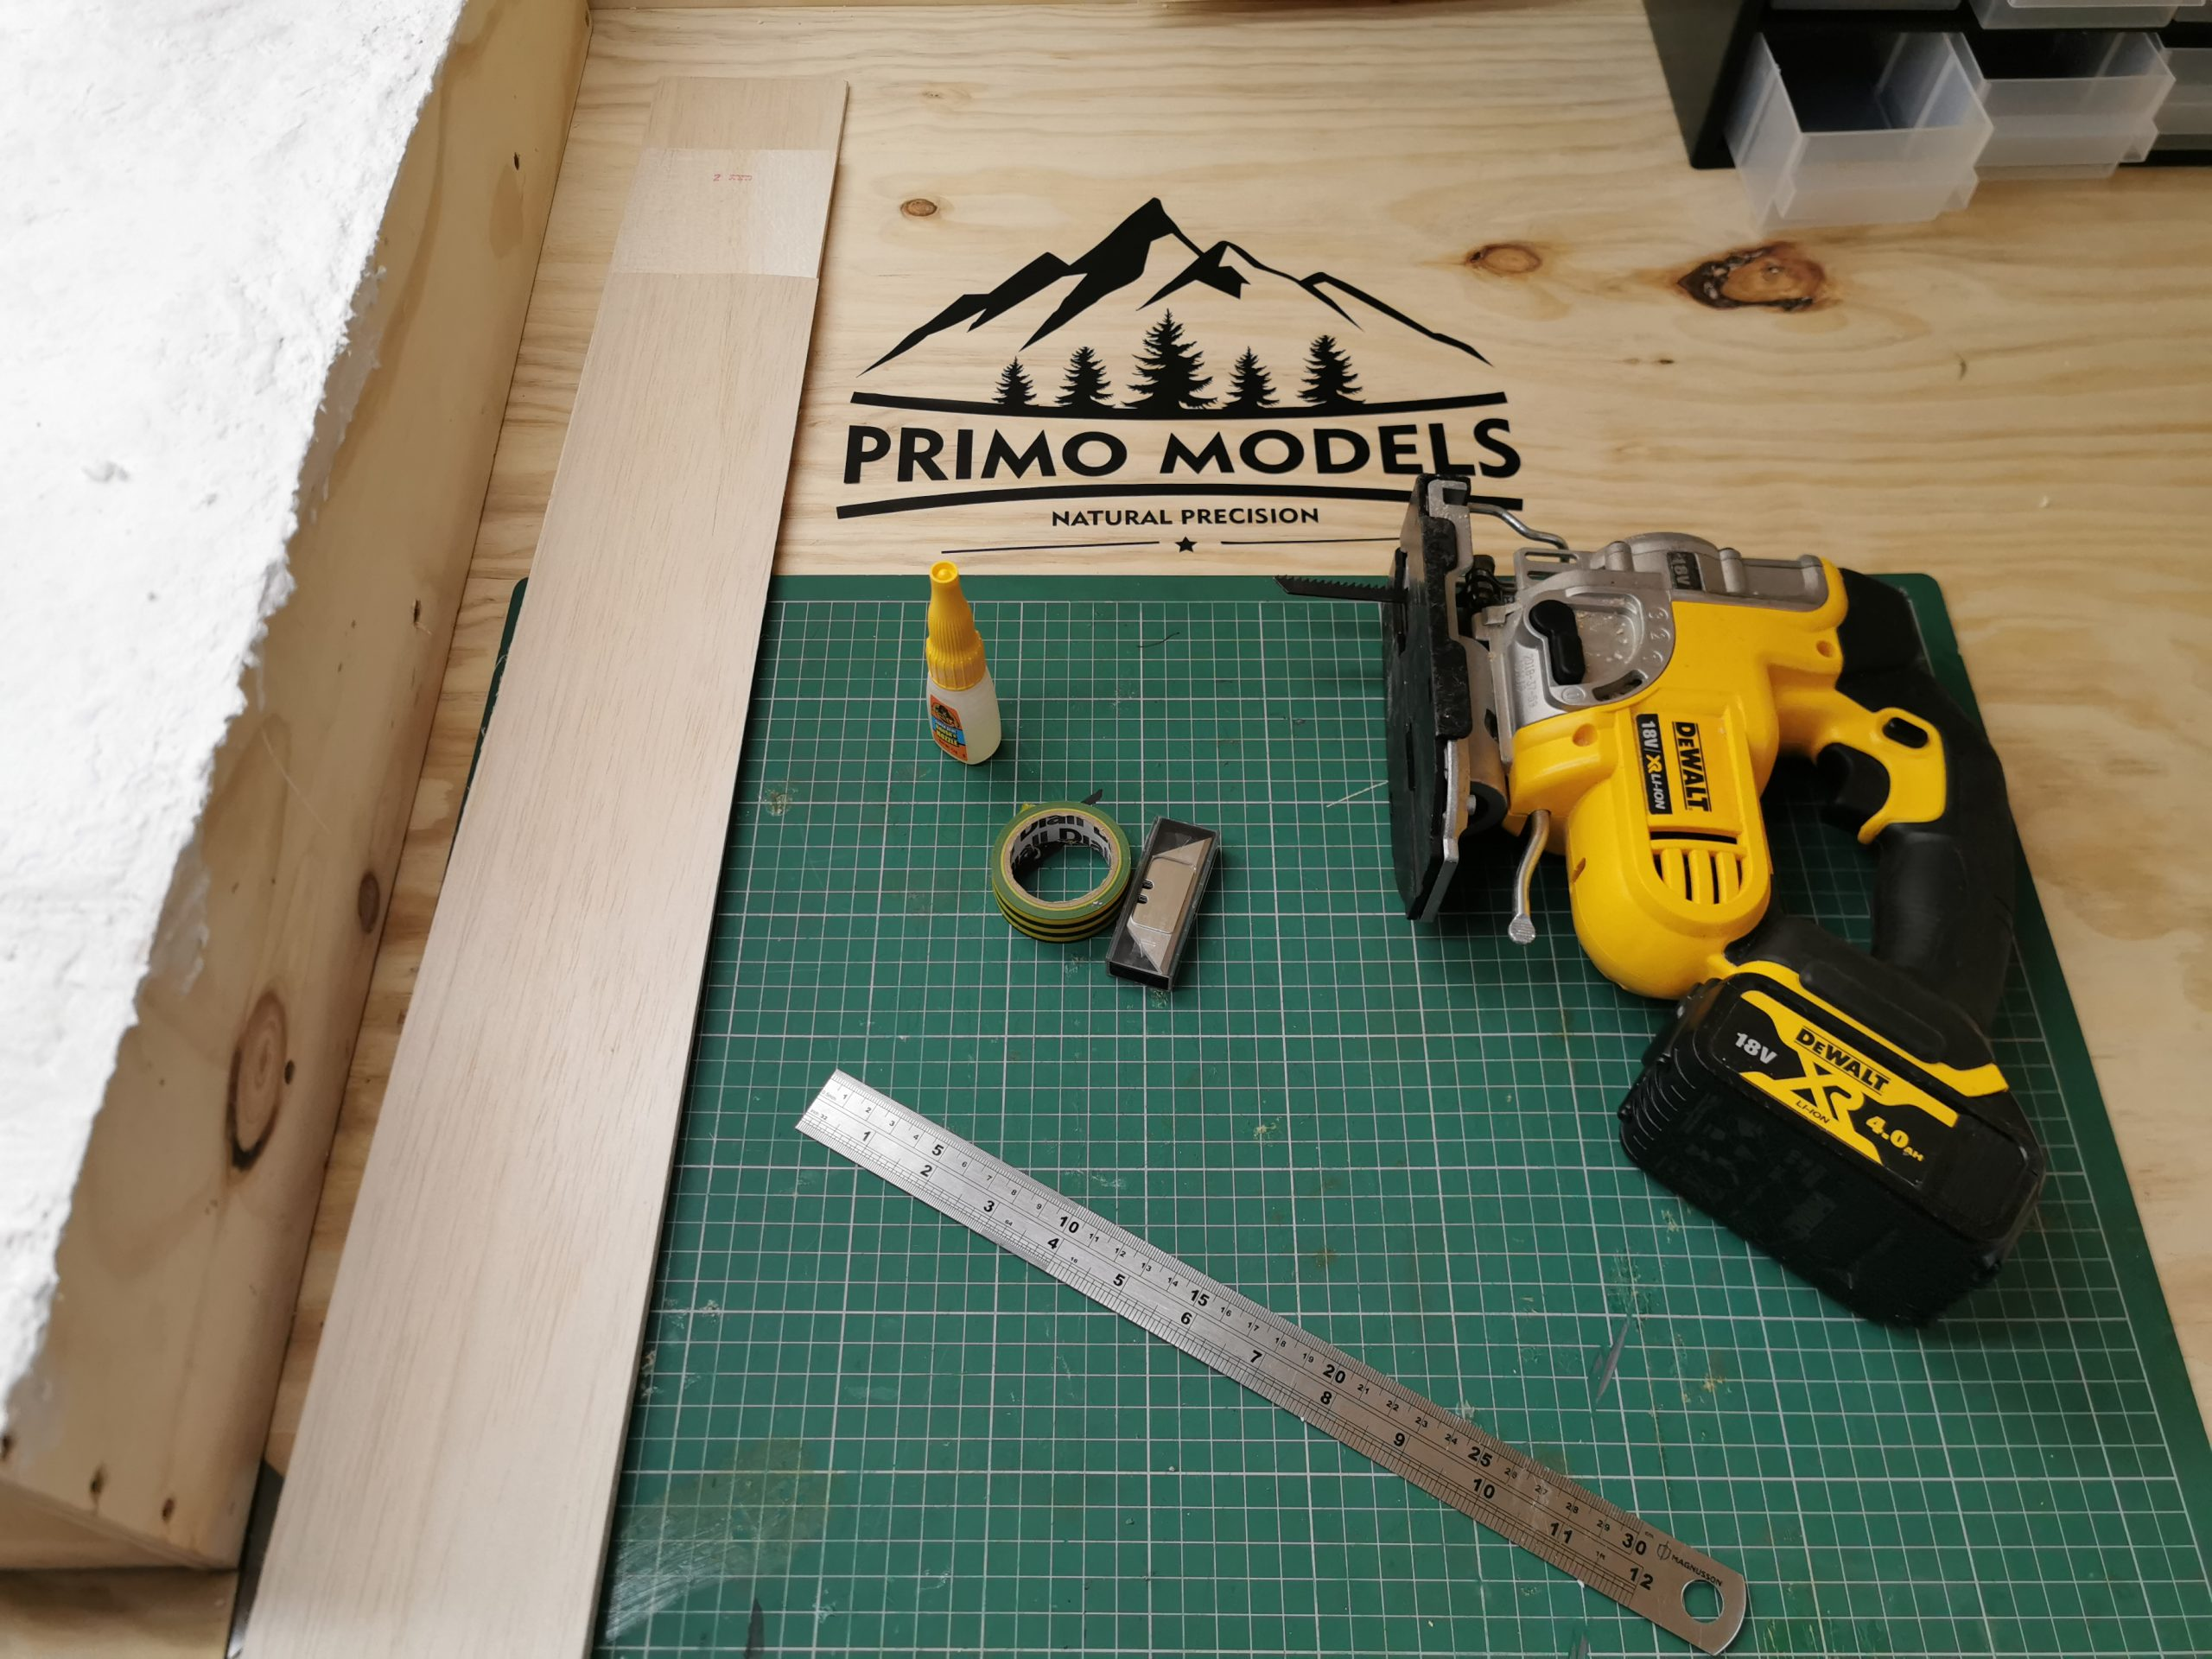 Tools for the plank maker tool project.